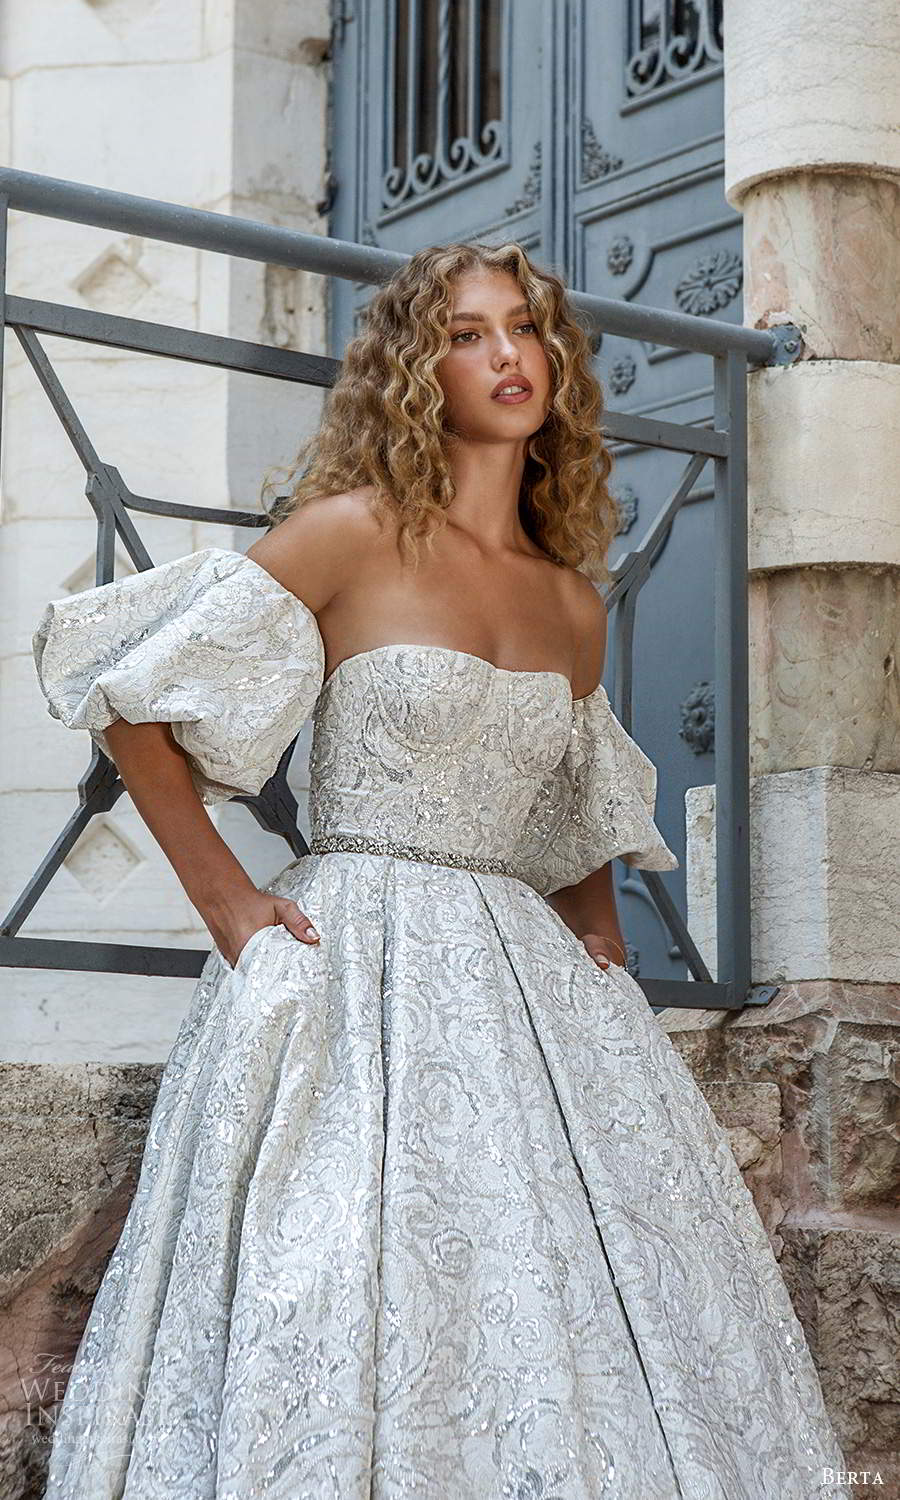 berta fall 2021 bridal detached puff sleeves strapless semi sweetheart neckline fully embellished a line ball gown wedding dress chapel train (8) zv